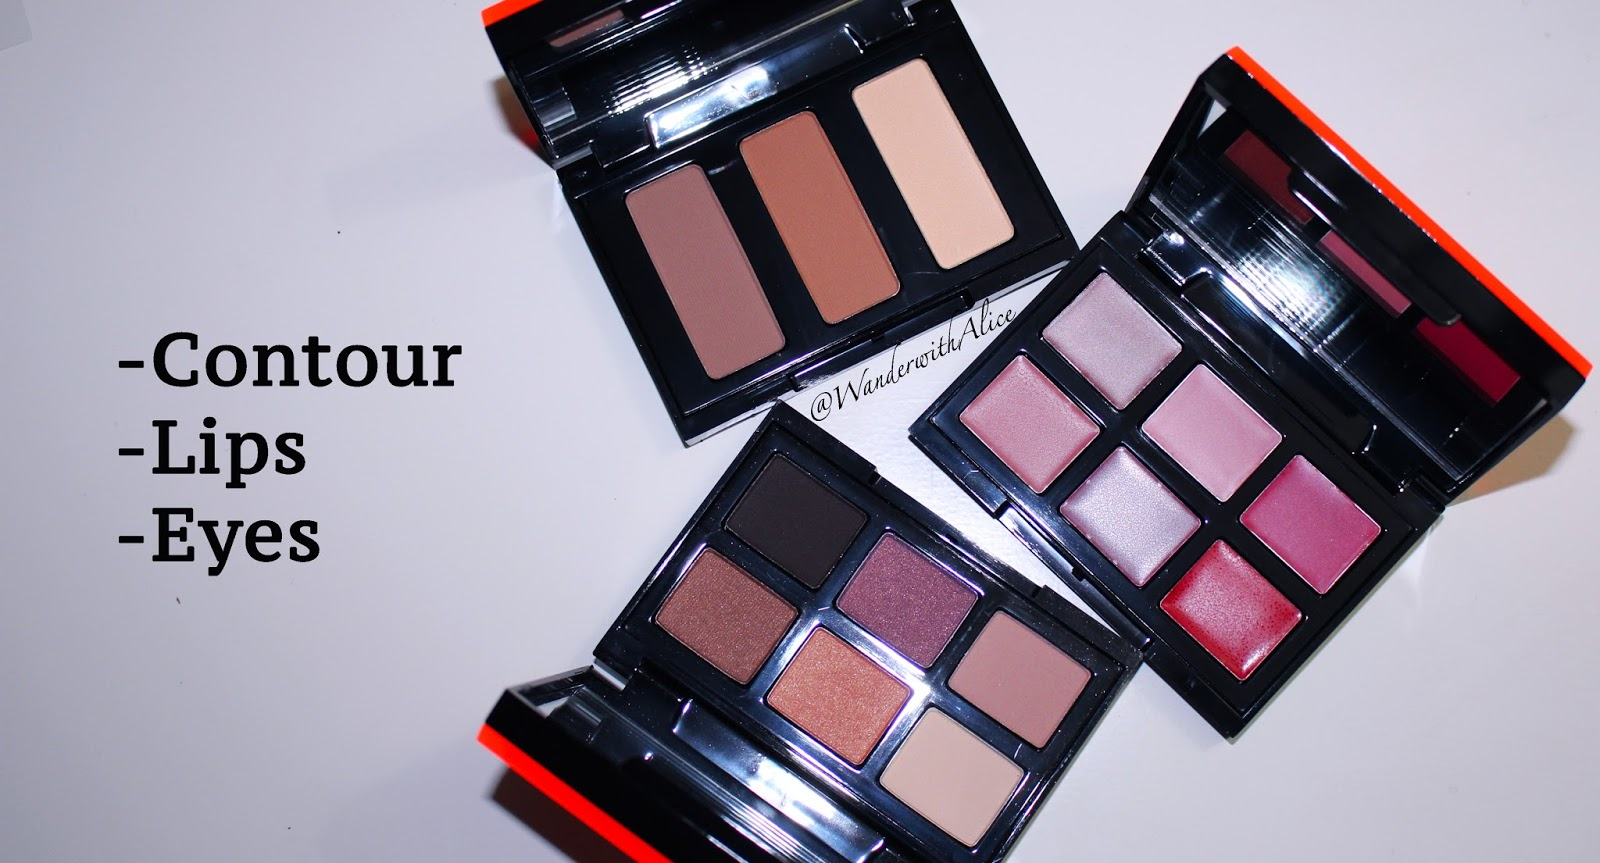 Holiday 2016 Smashbox Light It Up Trio Palettes Eyes Contour Be Legendary Matte Lipstick Palettelimited Edition The Three Consist Of A Mini Version Smashboxs Step By Kit In Finish Bronze Highlight